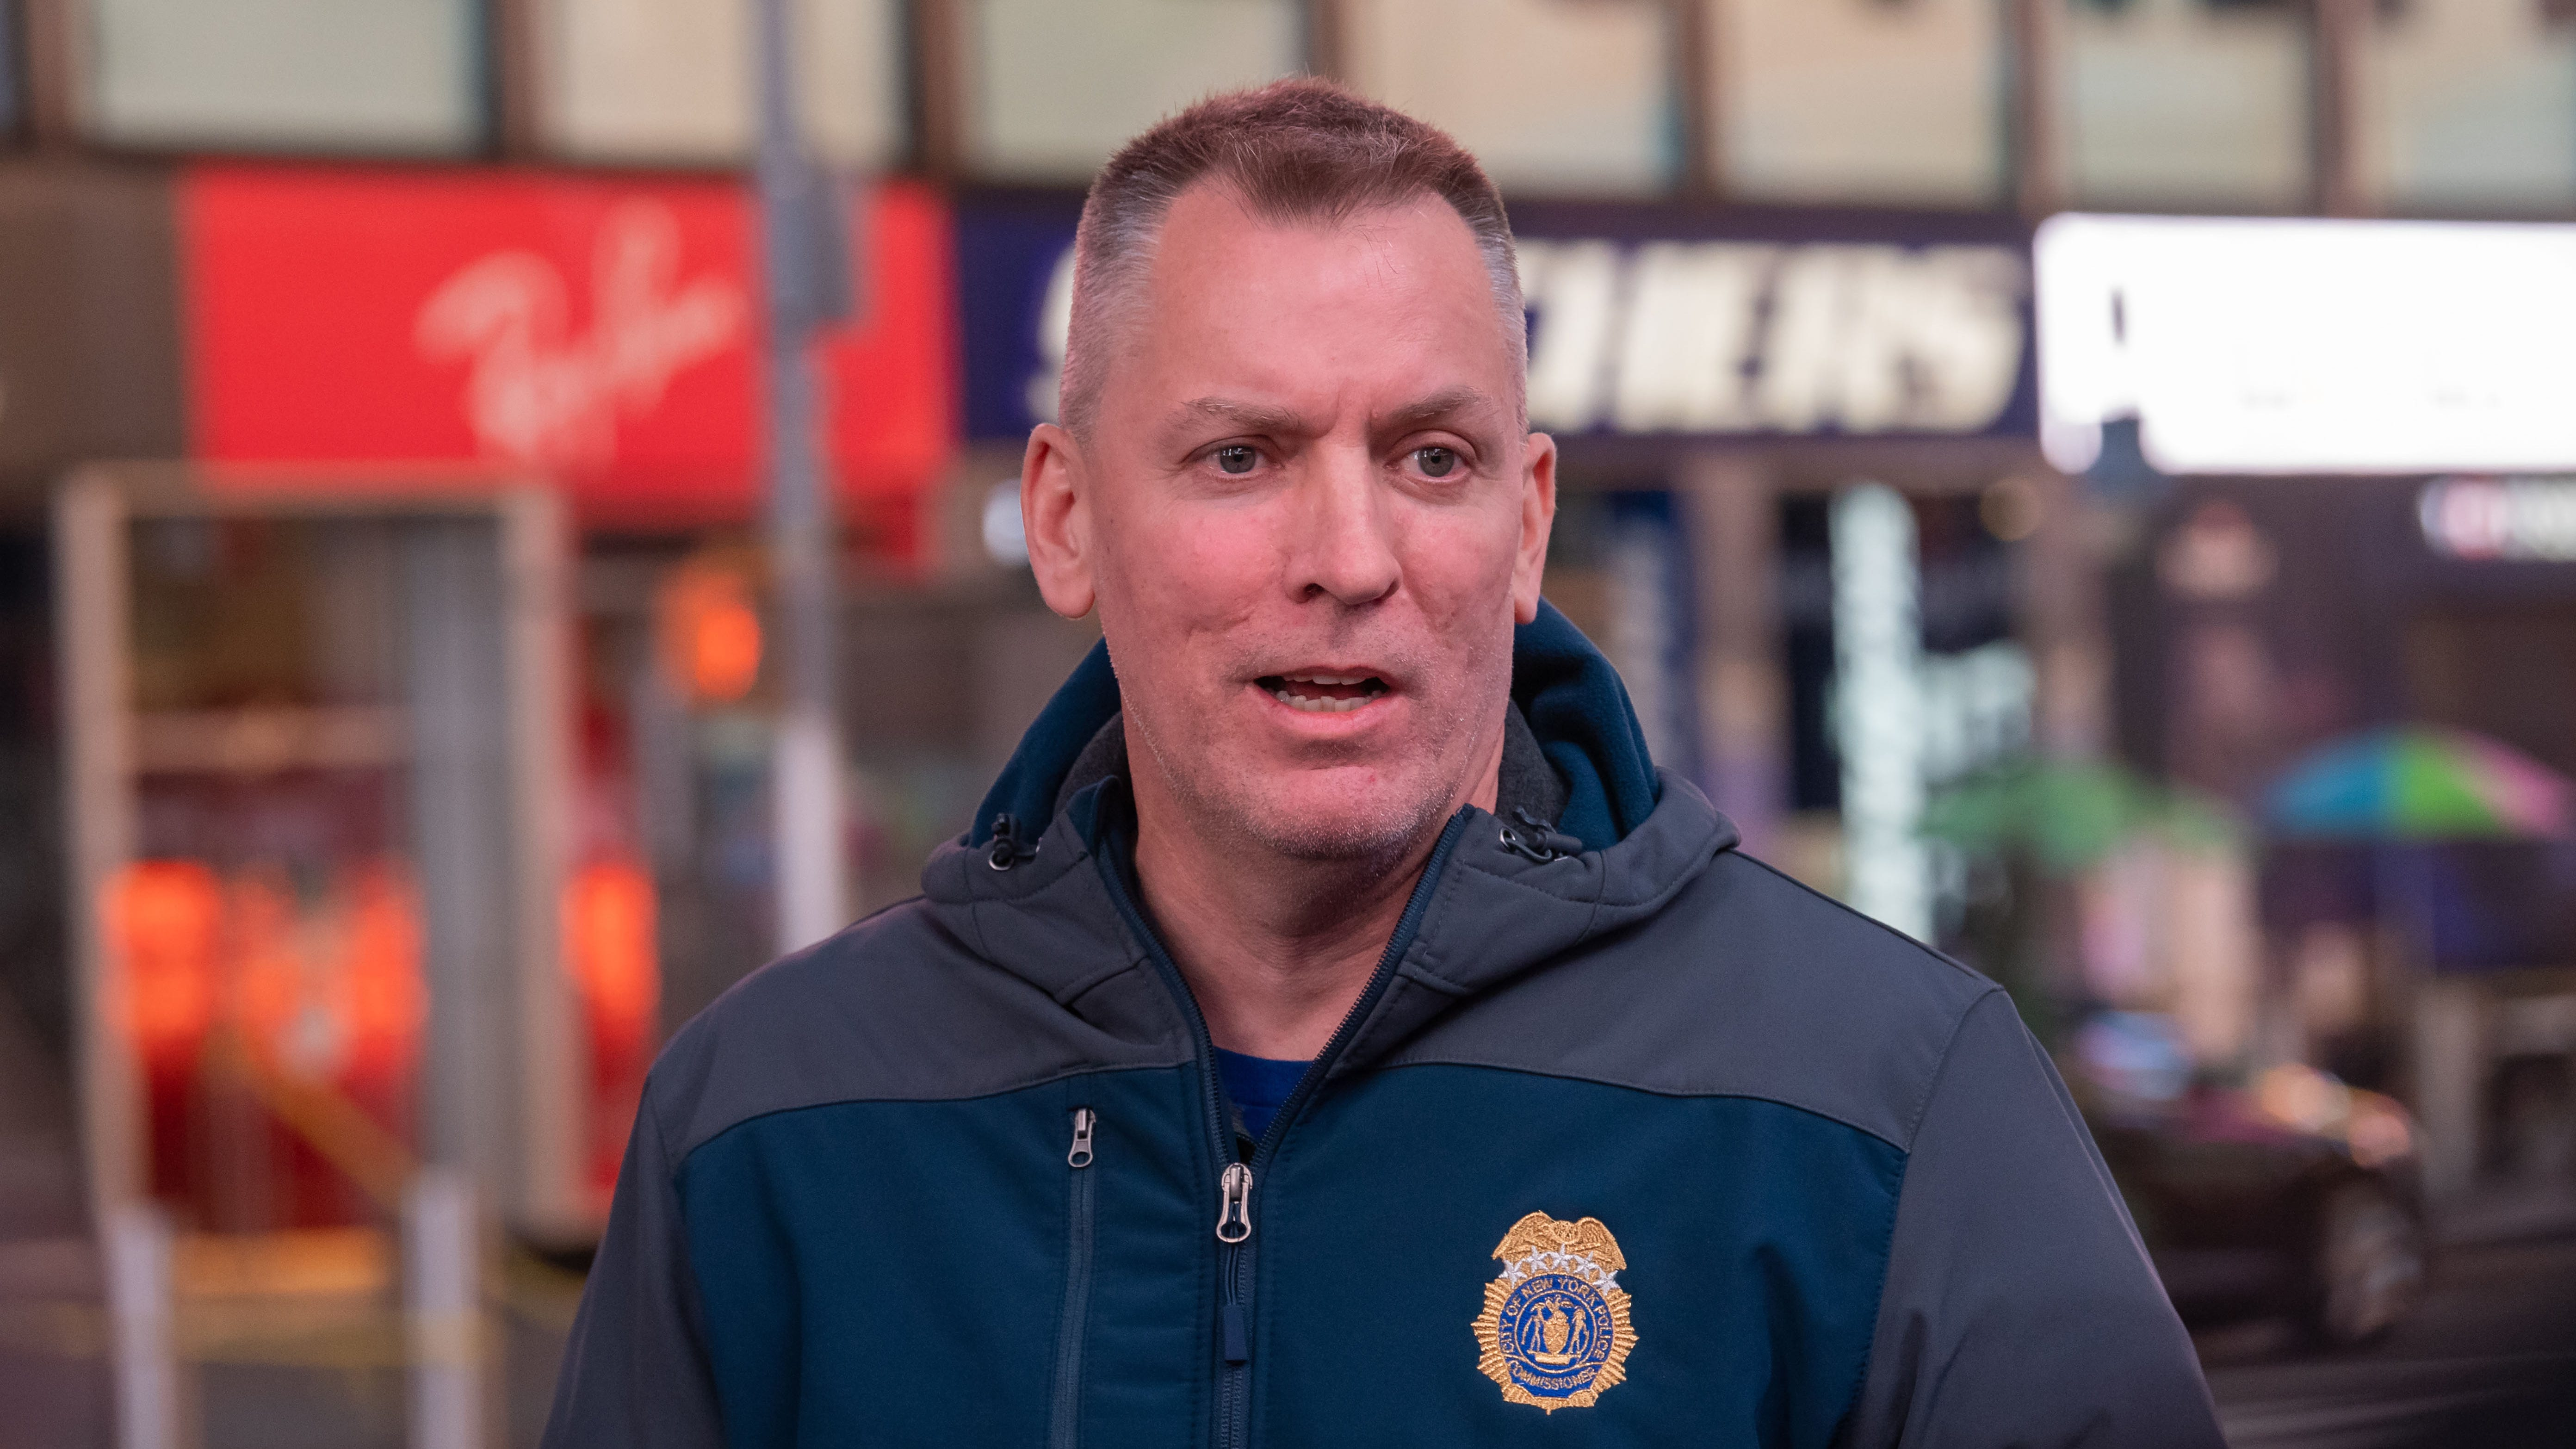 Shea: NYPD faces 'real tough battle' as NY laws 'upend the system,' send criminals back on streets